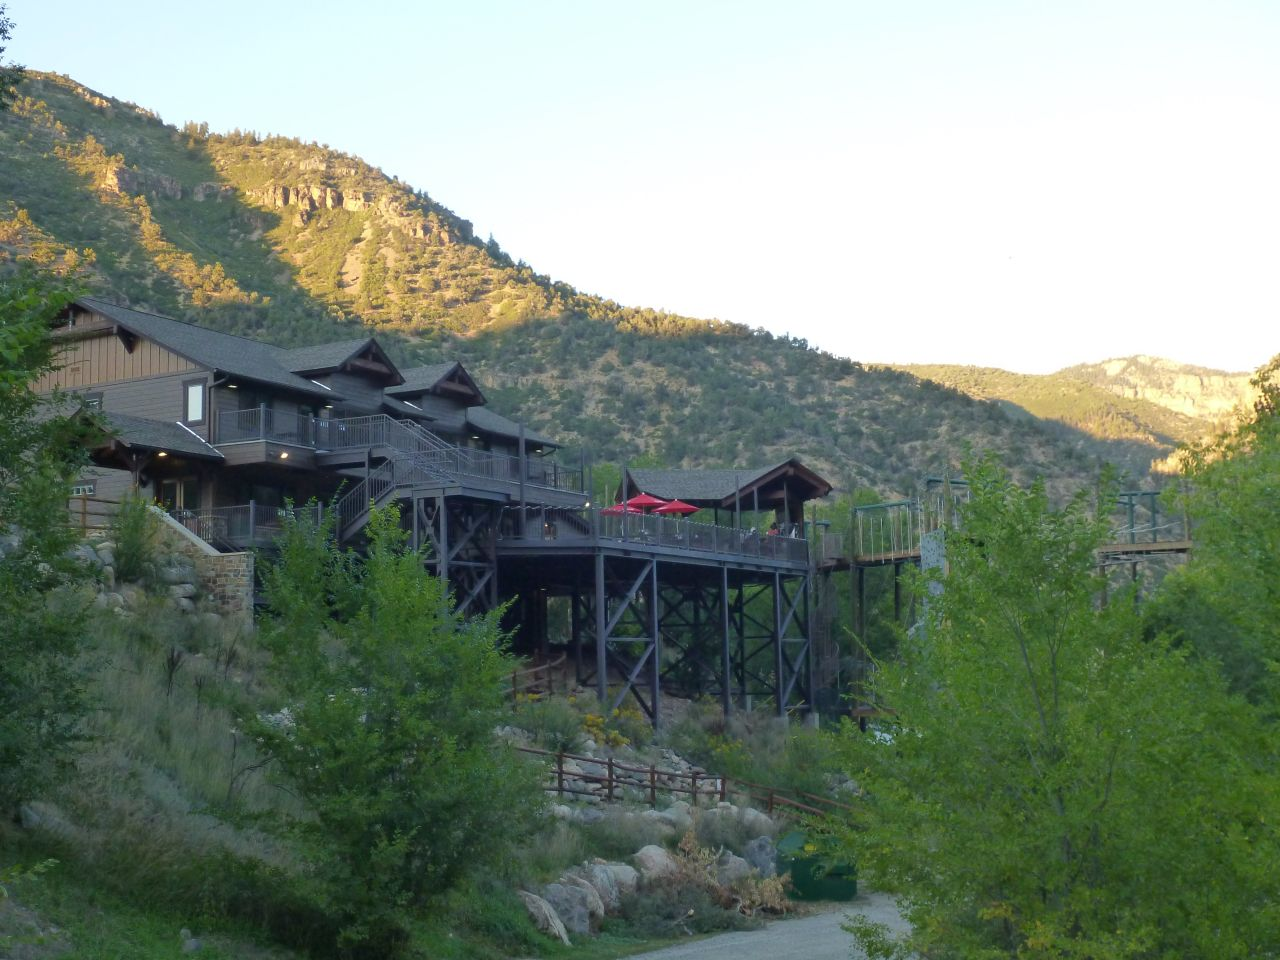 The Outdoor Patio Area OF Glenwood Canyon Resort Near Glenwood Springs, CO